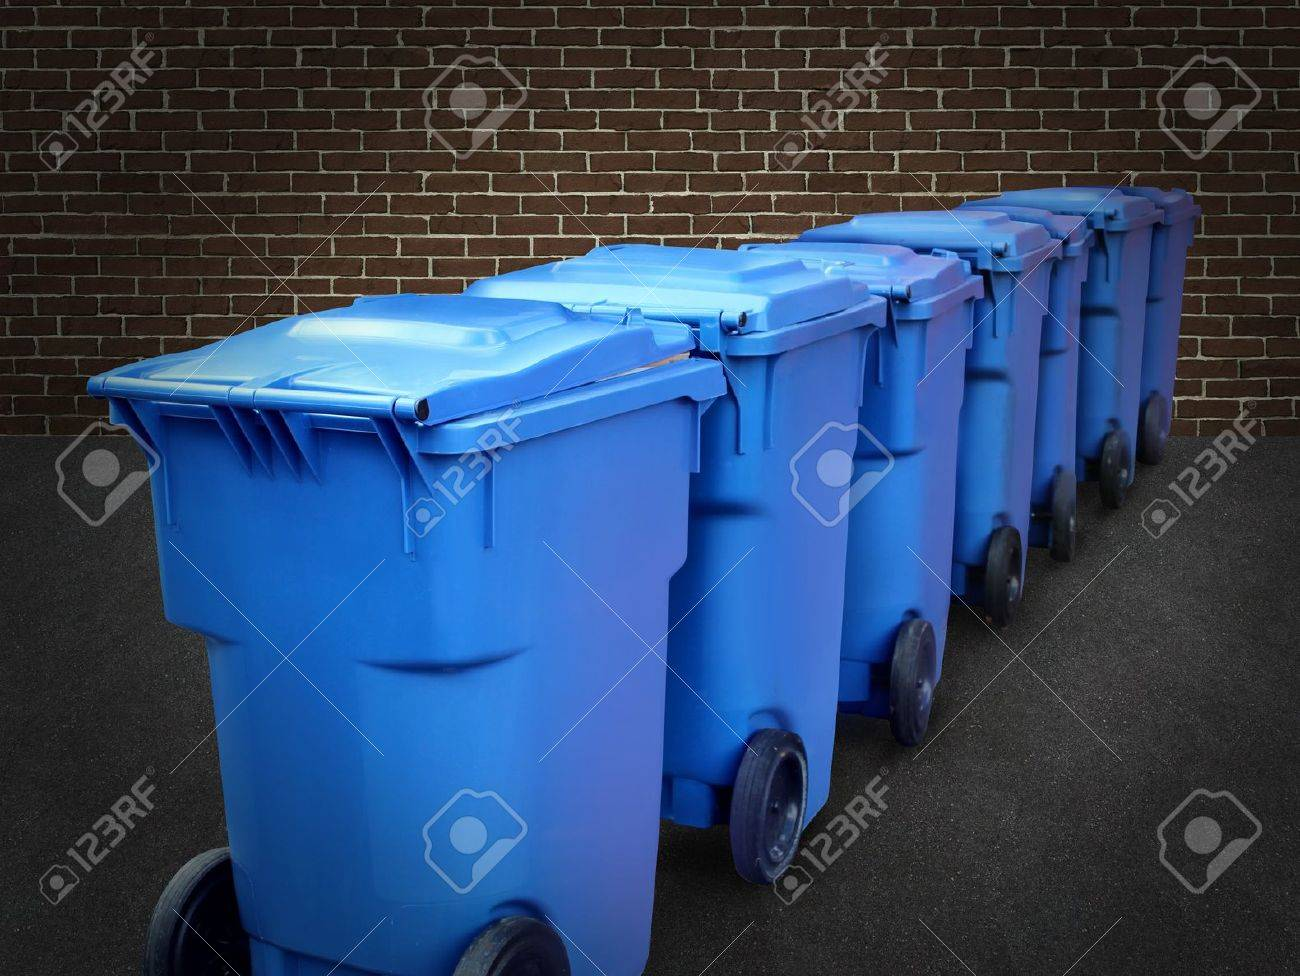 Recycle bins in a group made of commercial size blue plastic containers in a city street back alley against a brick wall as a conservation and recycling symbol of business environmental responsability Stock Photo - 15845981